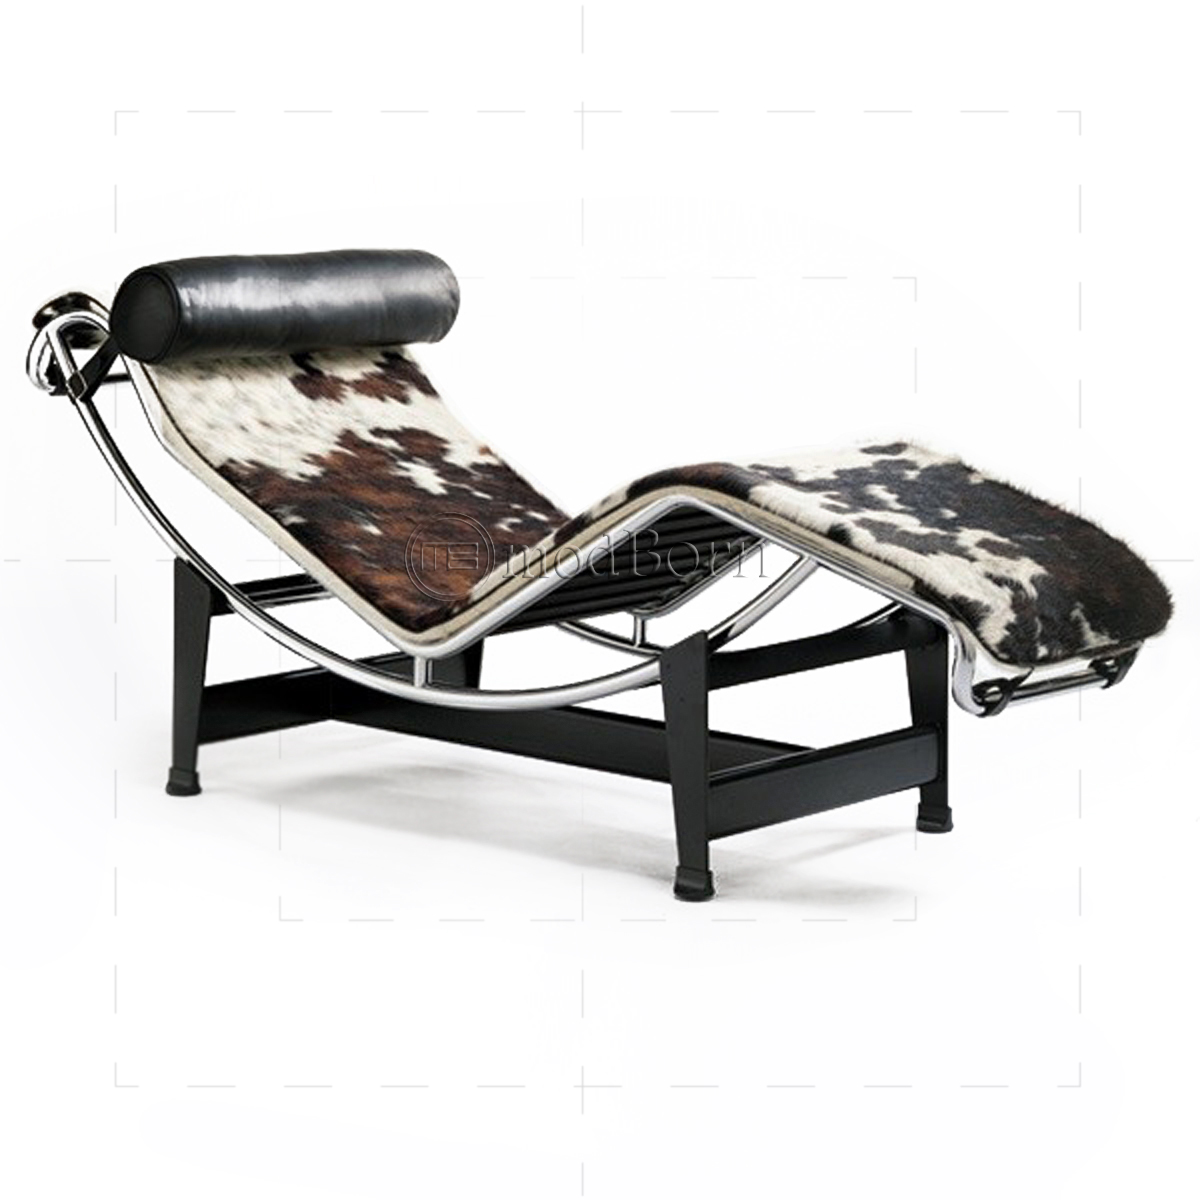 Le corbusier style lc4 chaise longue pony leather replica for Chaise longue le corbusier vache